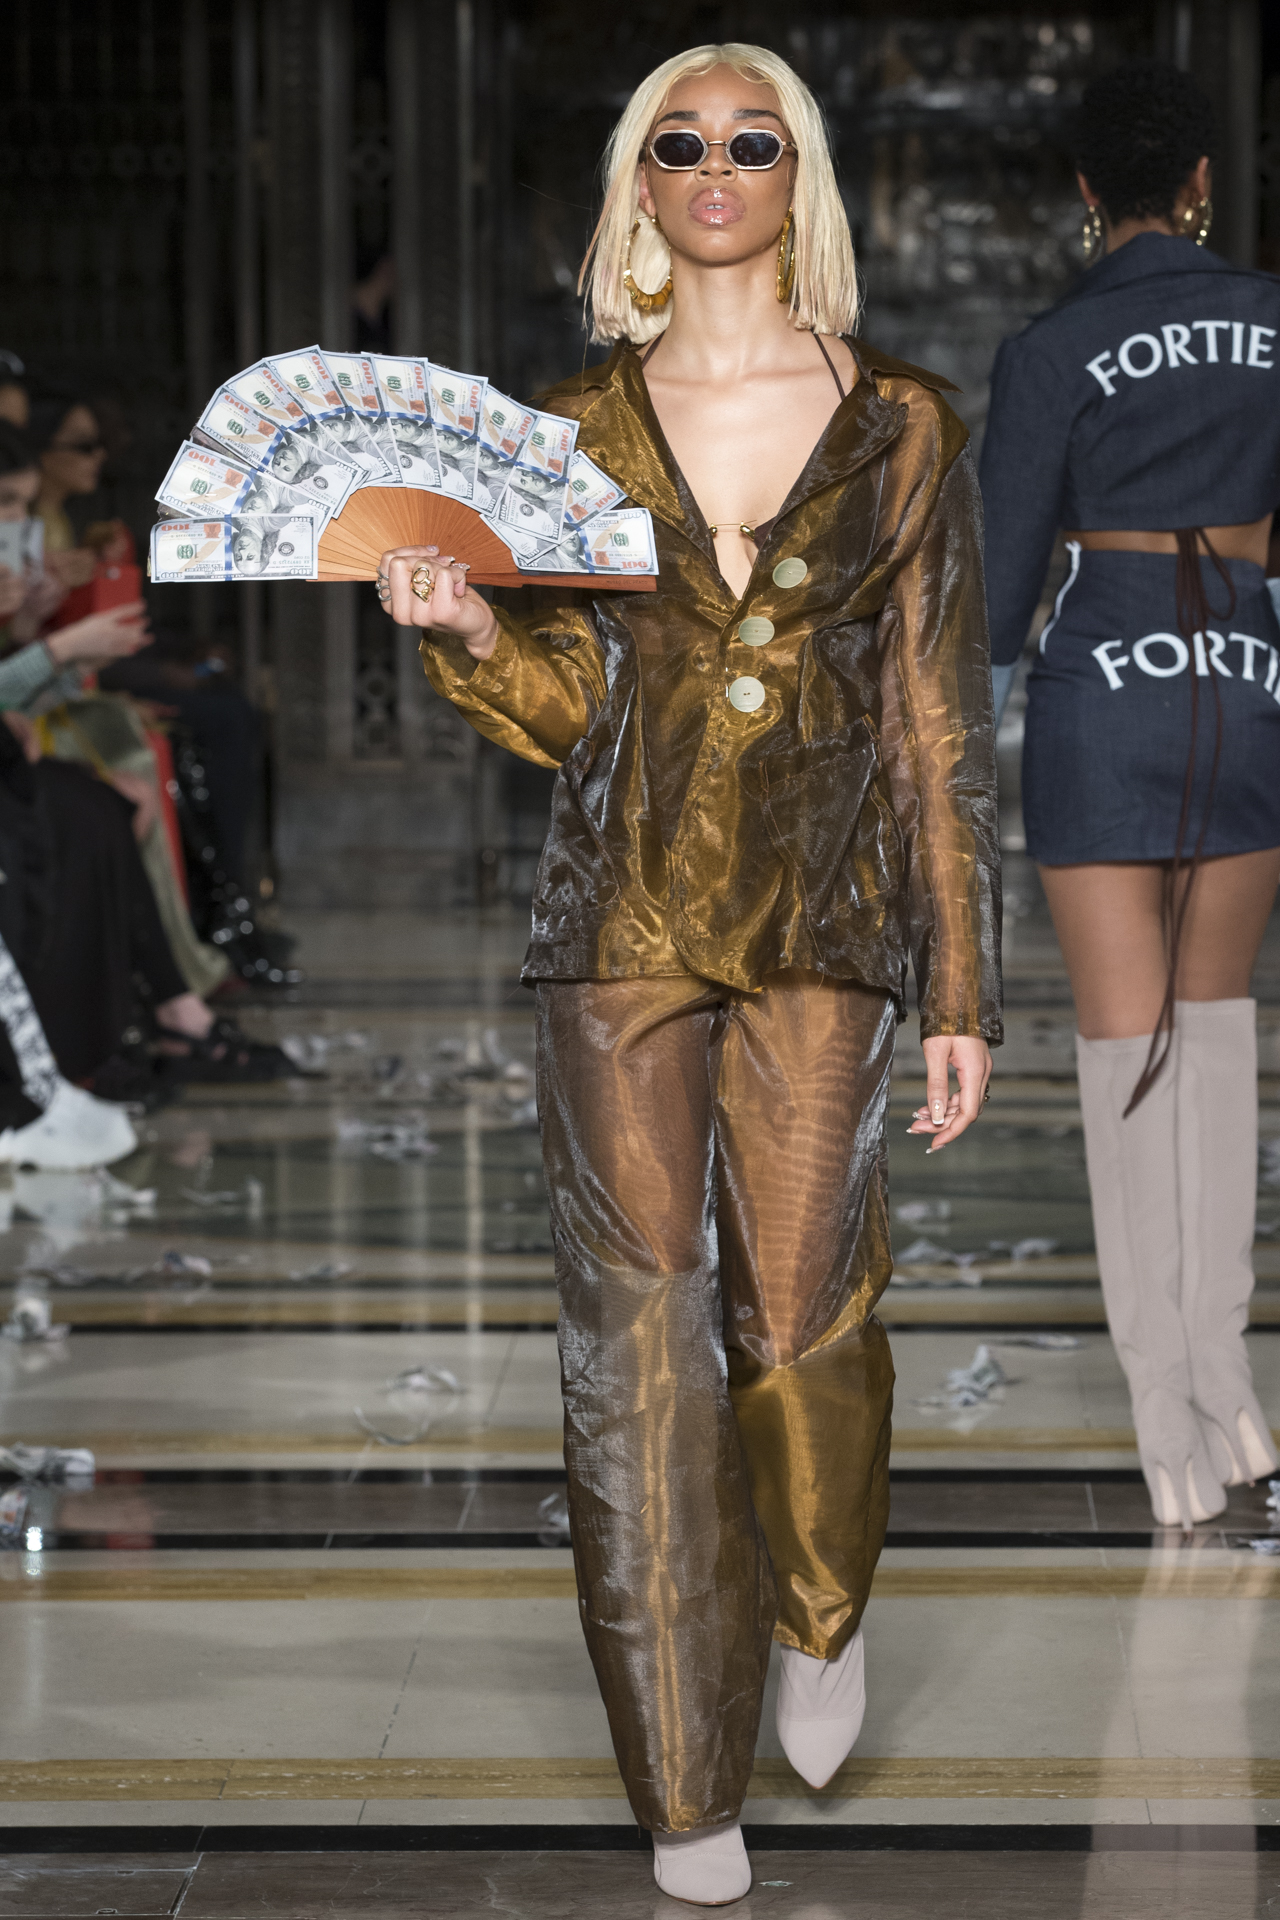 Merit_Award_Fortie_Label_72dpi_AW18_009.JPG